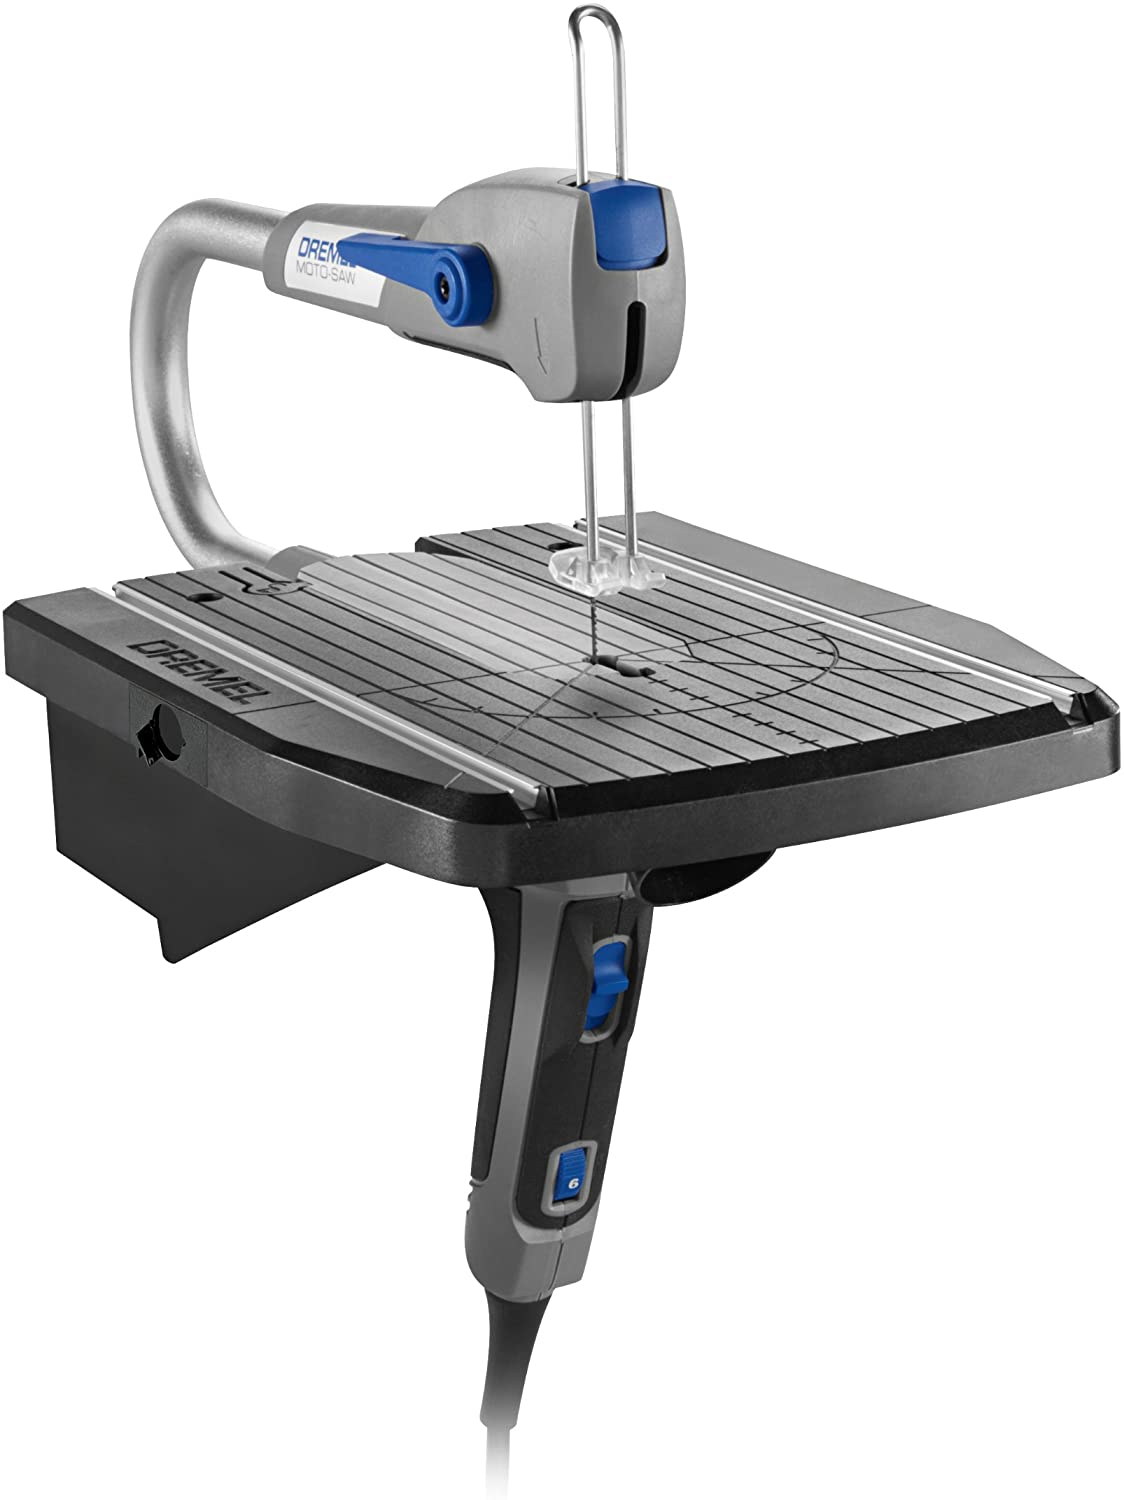 Dremel MS20-01 Moto-Saw Variable Speed Compact Scroll Saw